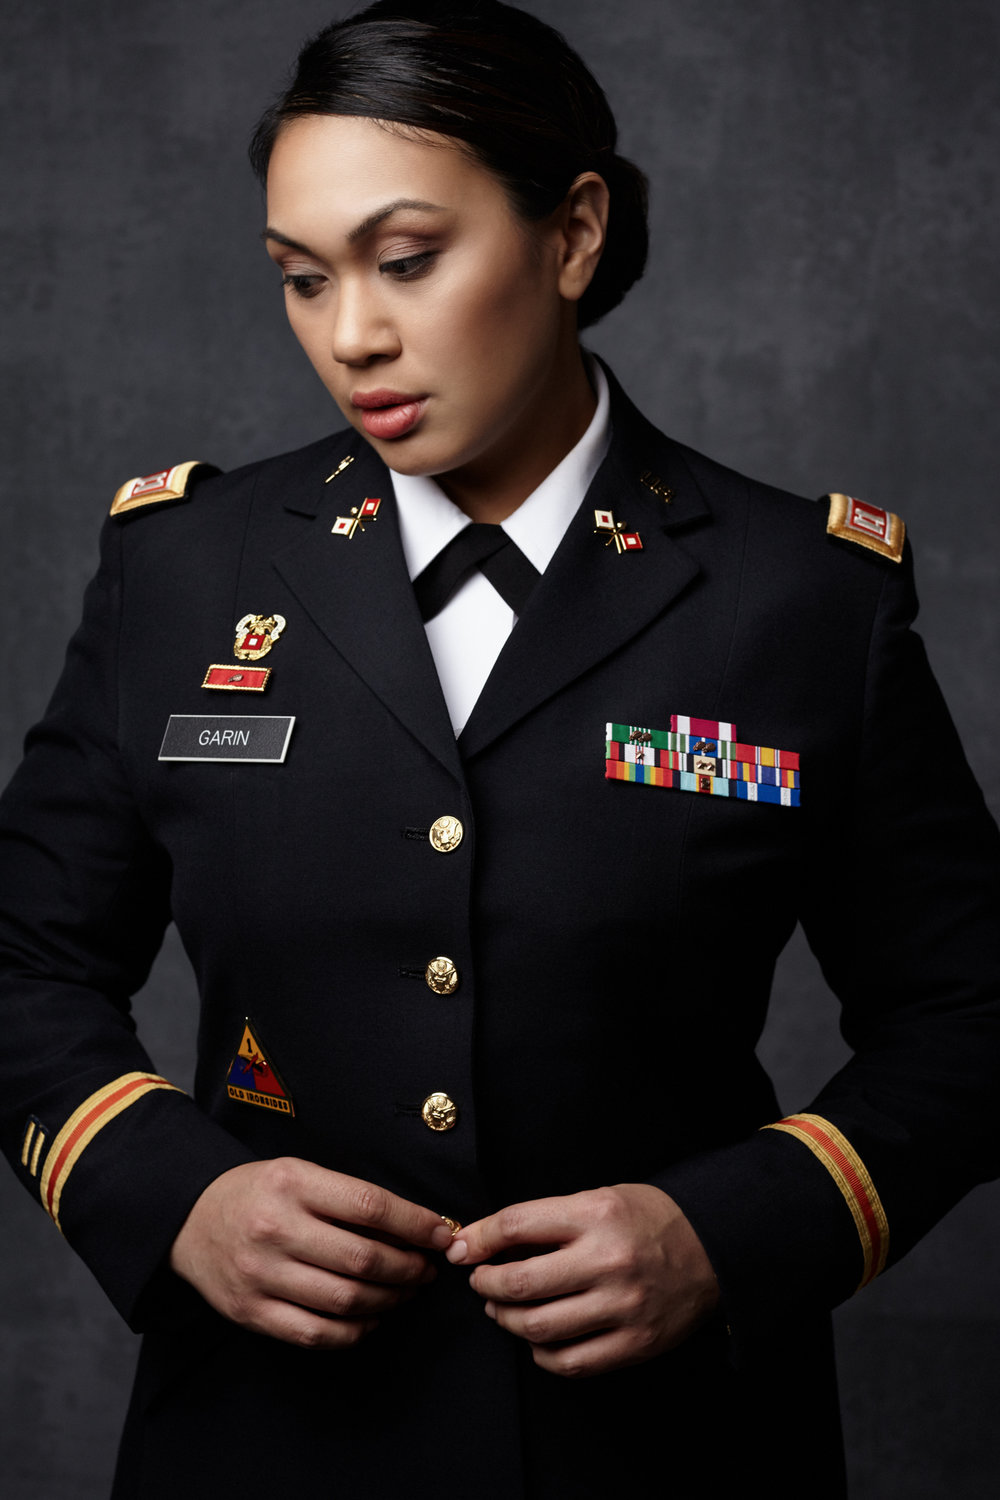 Military-Women-Project-Jenn-McIntyre-AianaGarin.jpg